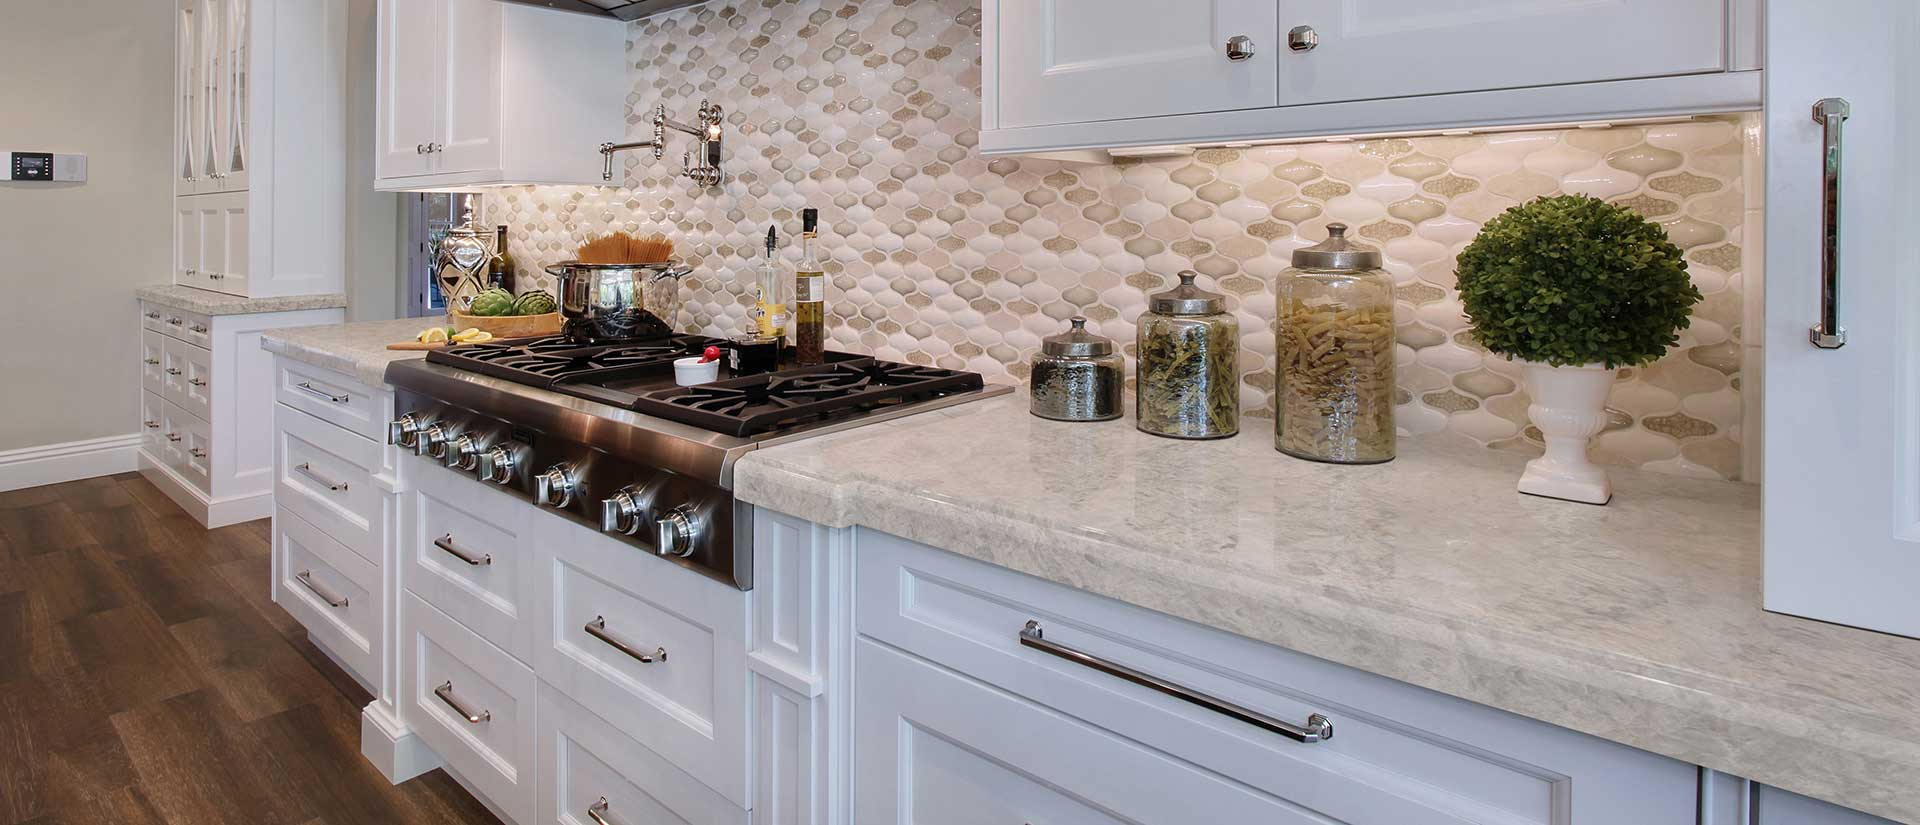 Portico Cream Quartz Countertops